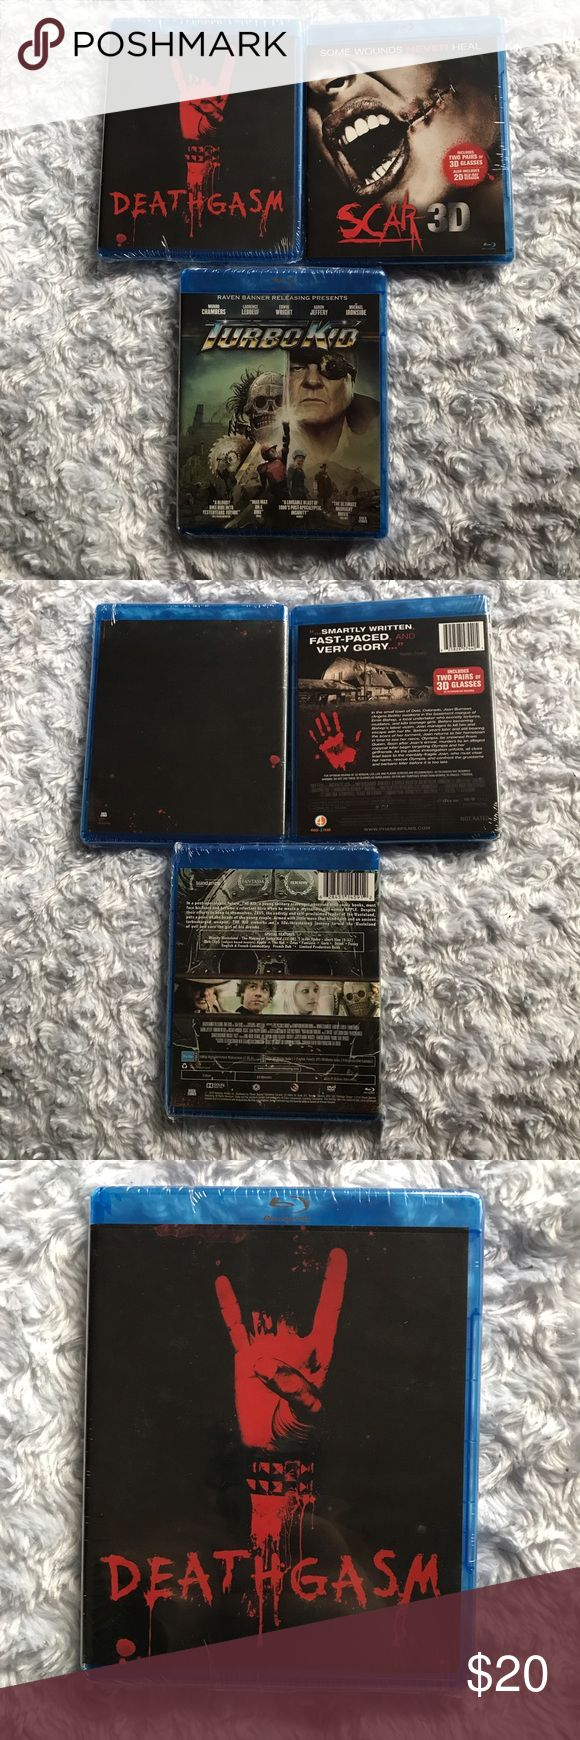 Lot of 3 Horror Movies on Bluray Brand new and never opened, lot of three horror movie blurays. Deathgasm, Scar in 3D (includes 3D glasses), and Turbo Kid. Tags: bmovie Horror block Other